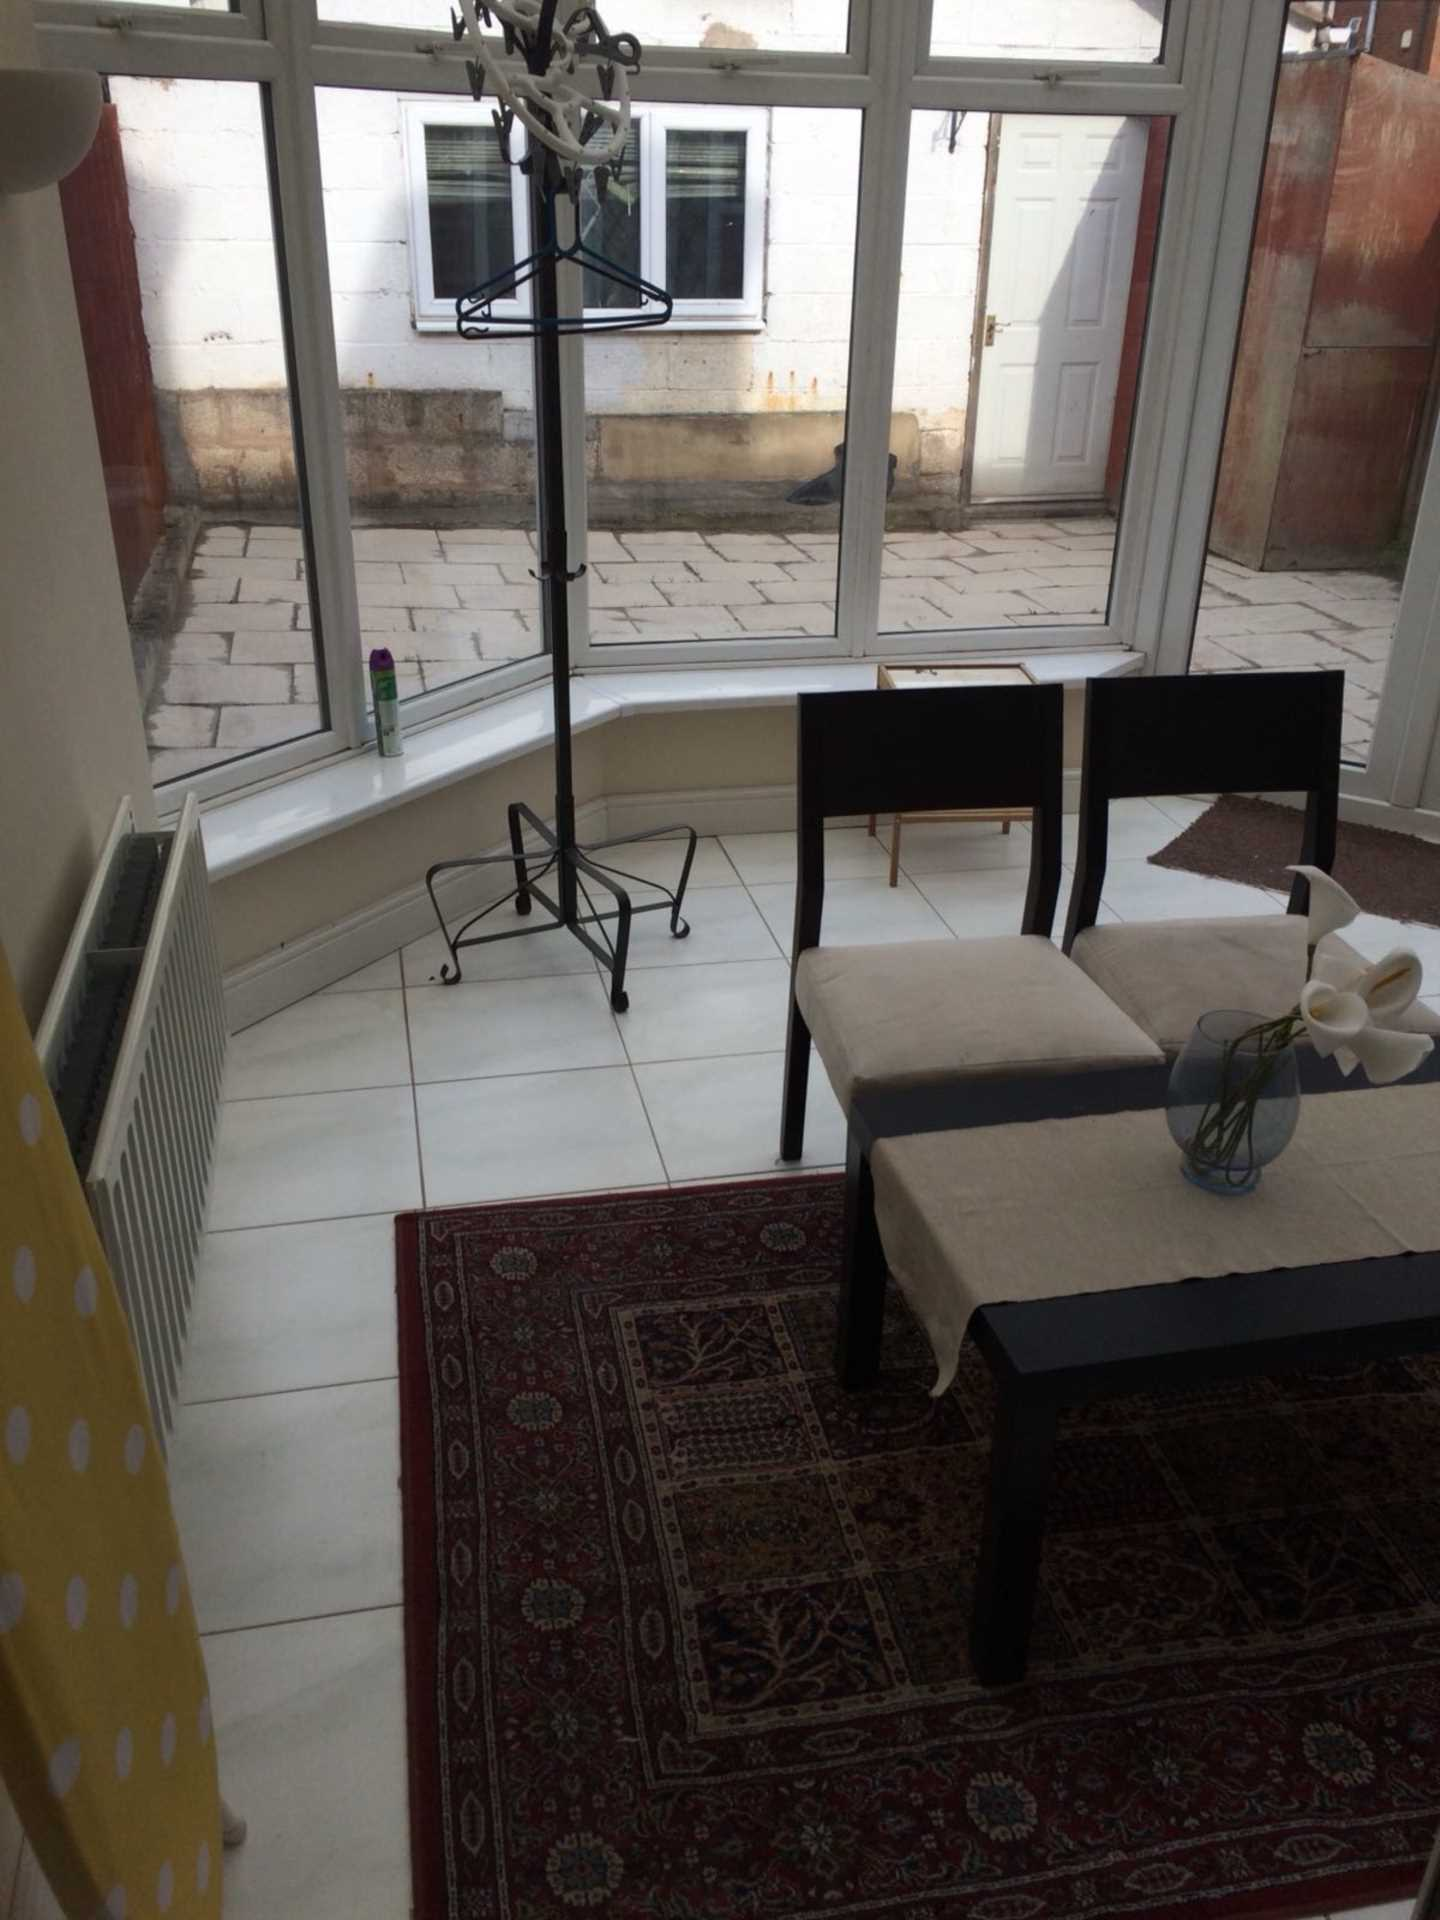 Room 4, Queensland Avenue - 5 bedroom 2 bathroom student home fully furnished, WIFI & bills included - NO FEES, Image 4